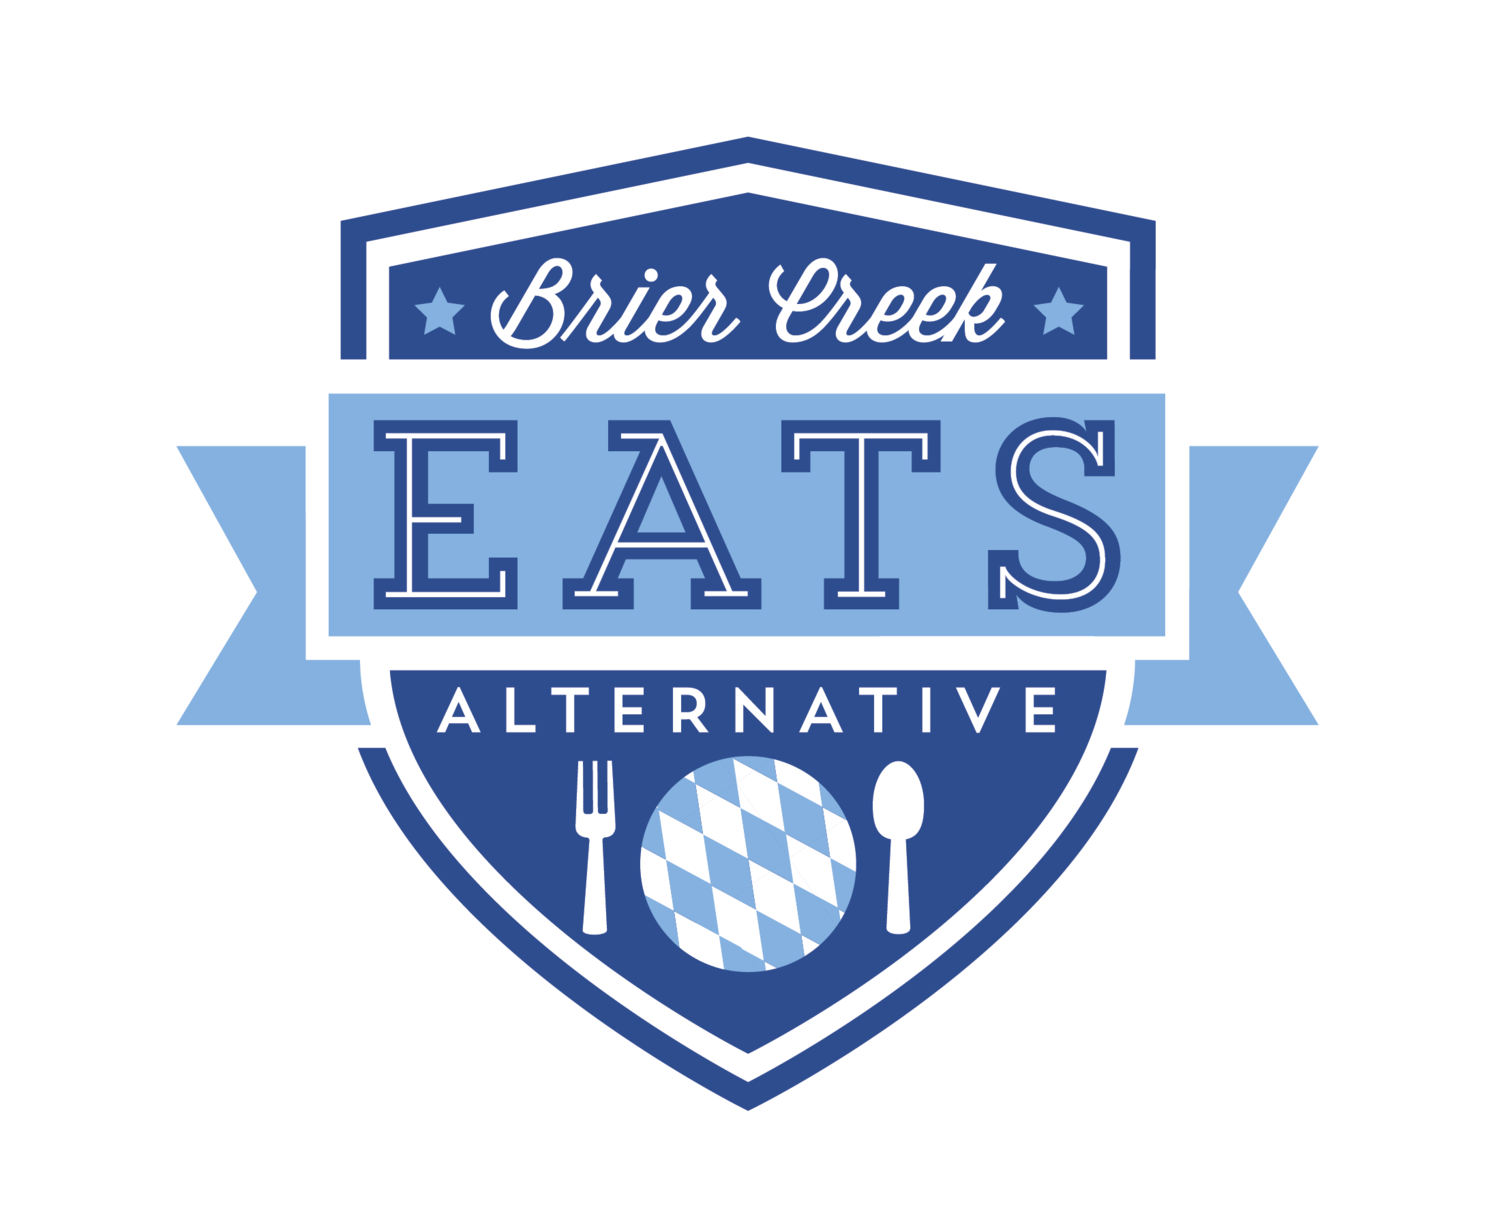 Brier Creek Eats Alternative